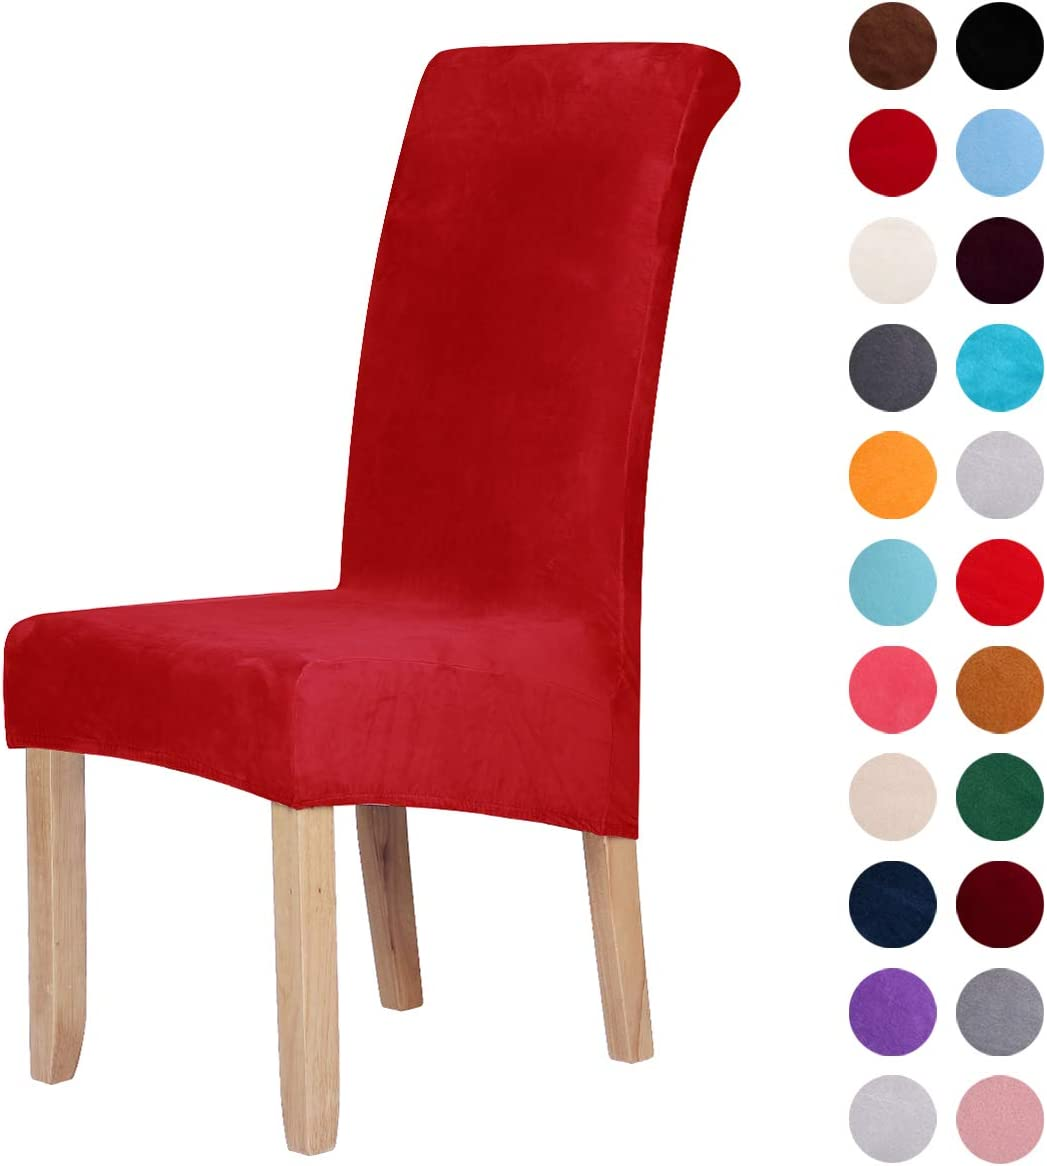 amazon co uk dining chair slipcovers home kitchen rh amazon co uk IKEA Dining Room Chair Covers IKEA Dining Room Chair Covers